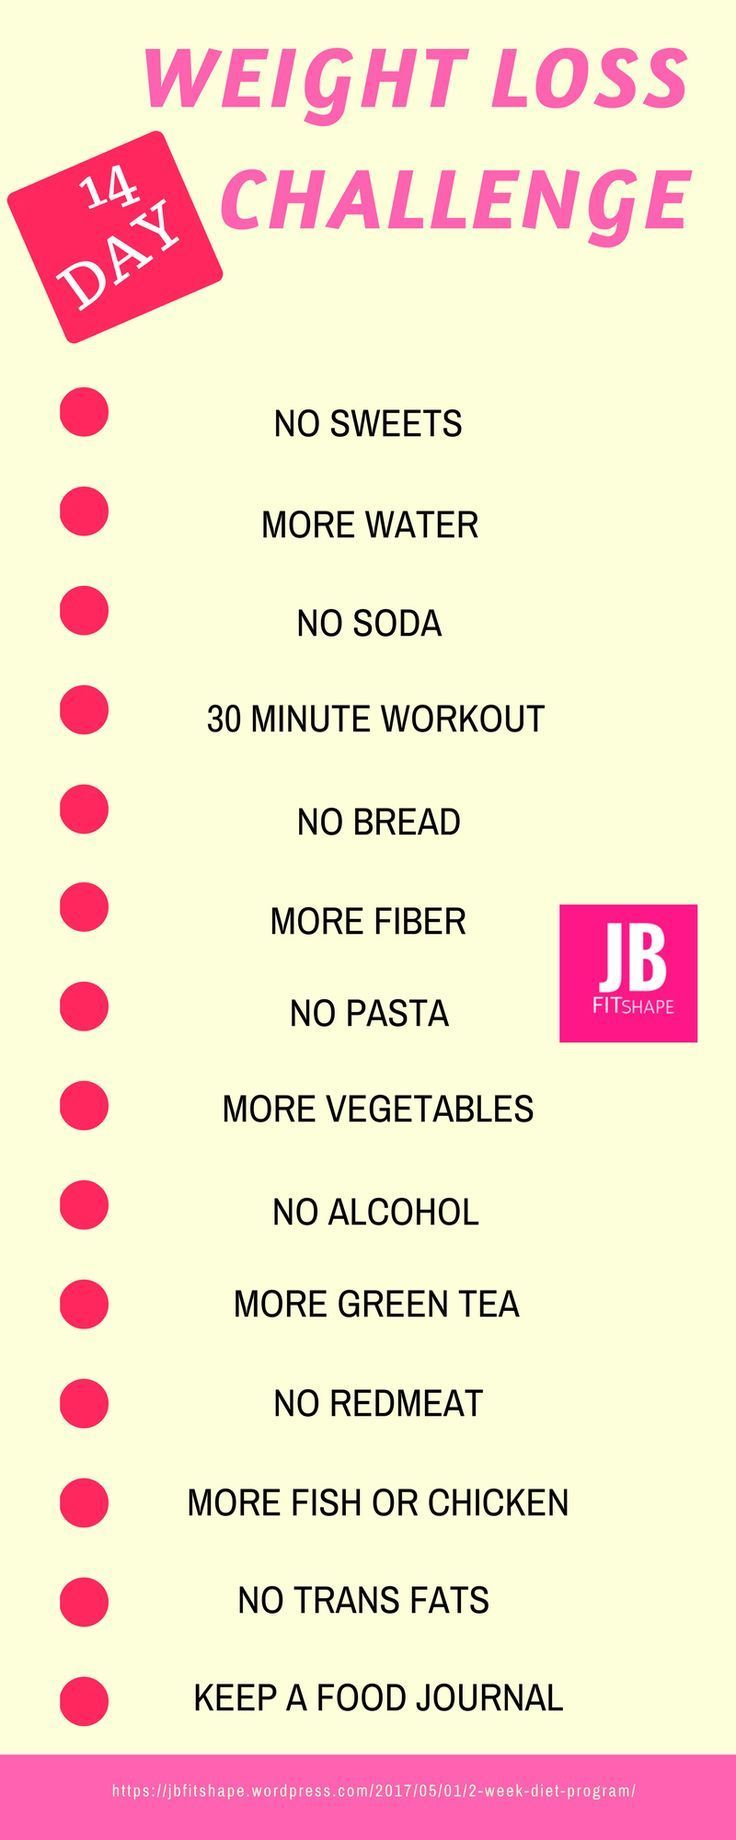 WEIGHT LOSS CHALLENGE Diet | Fitness | Weight Loss https://jbfitshape.wordpress.com/2017/05/01/2-week-diet-program/ http://amzn.to/2ssKnYB